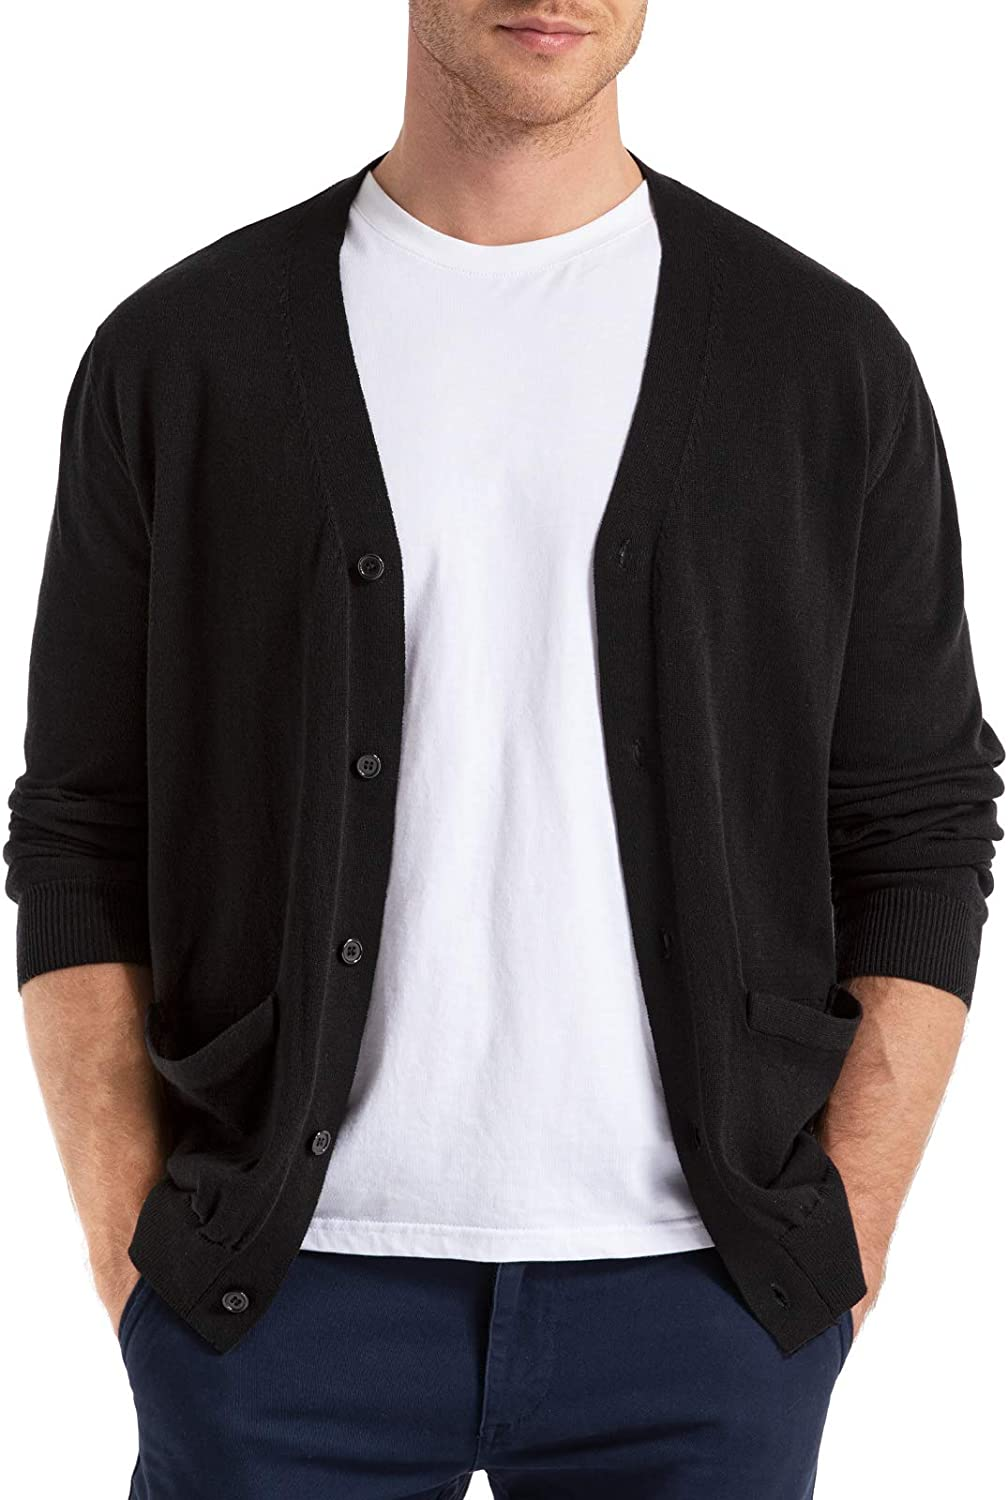 QUALFORT Mens Cardigan Popular brand in the world Sweater 100% Cotton Same day shipping Pockets F Slim Casual